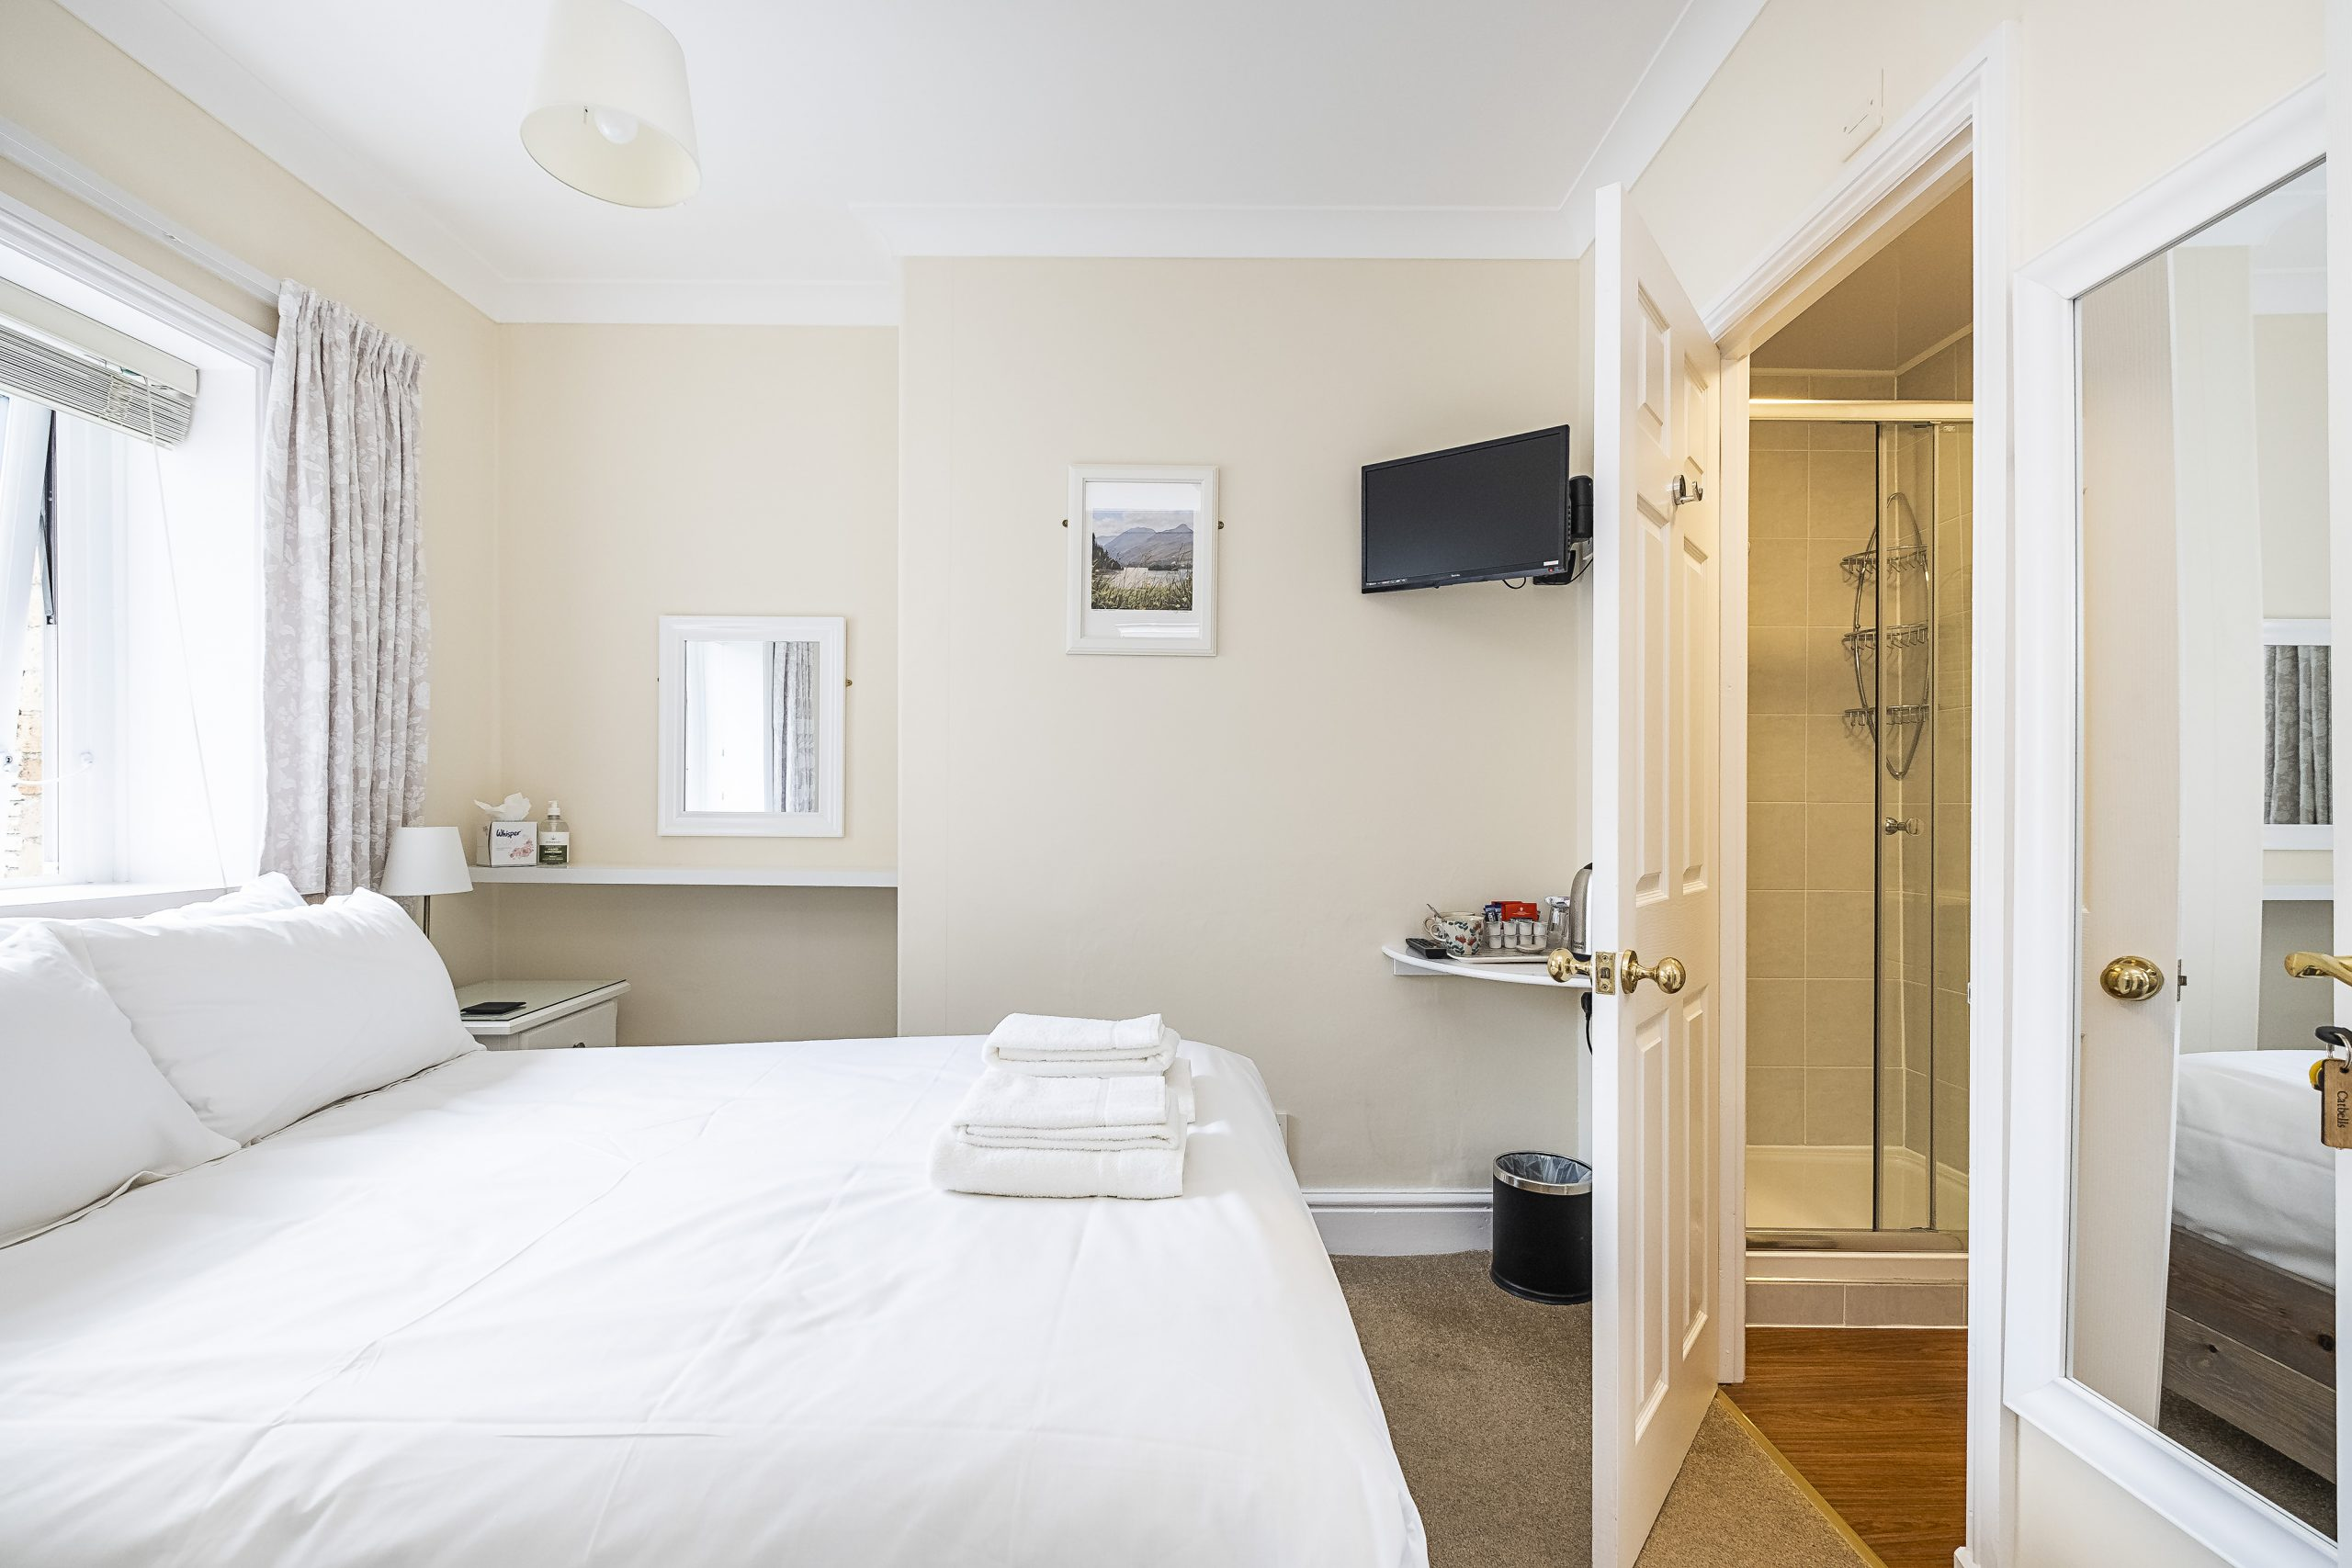 Double room at Cragwood